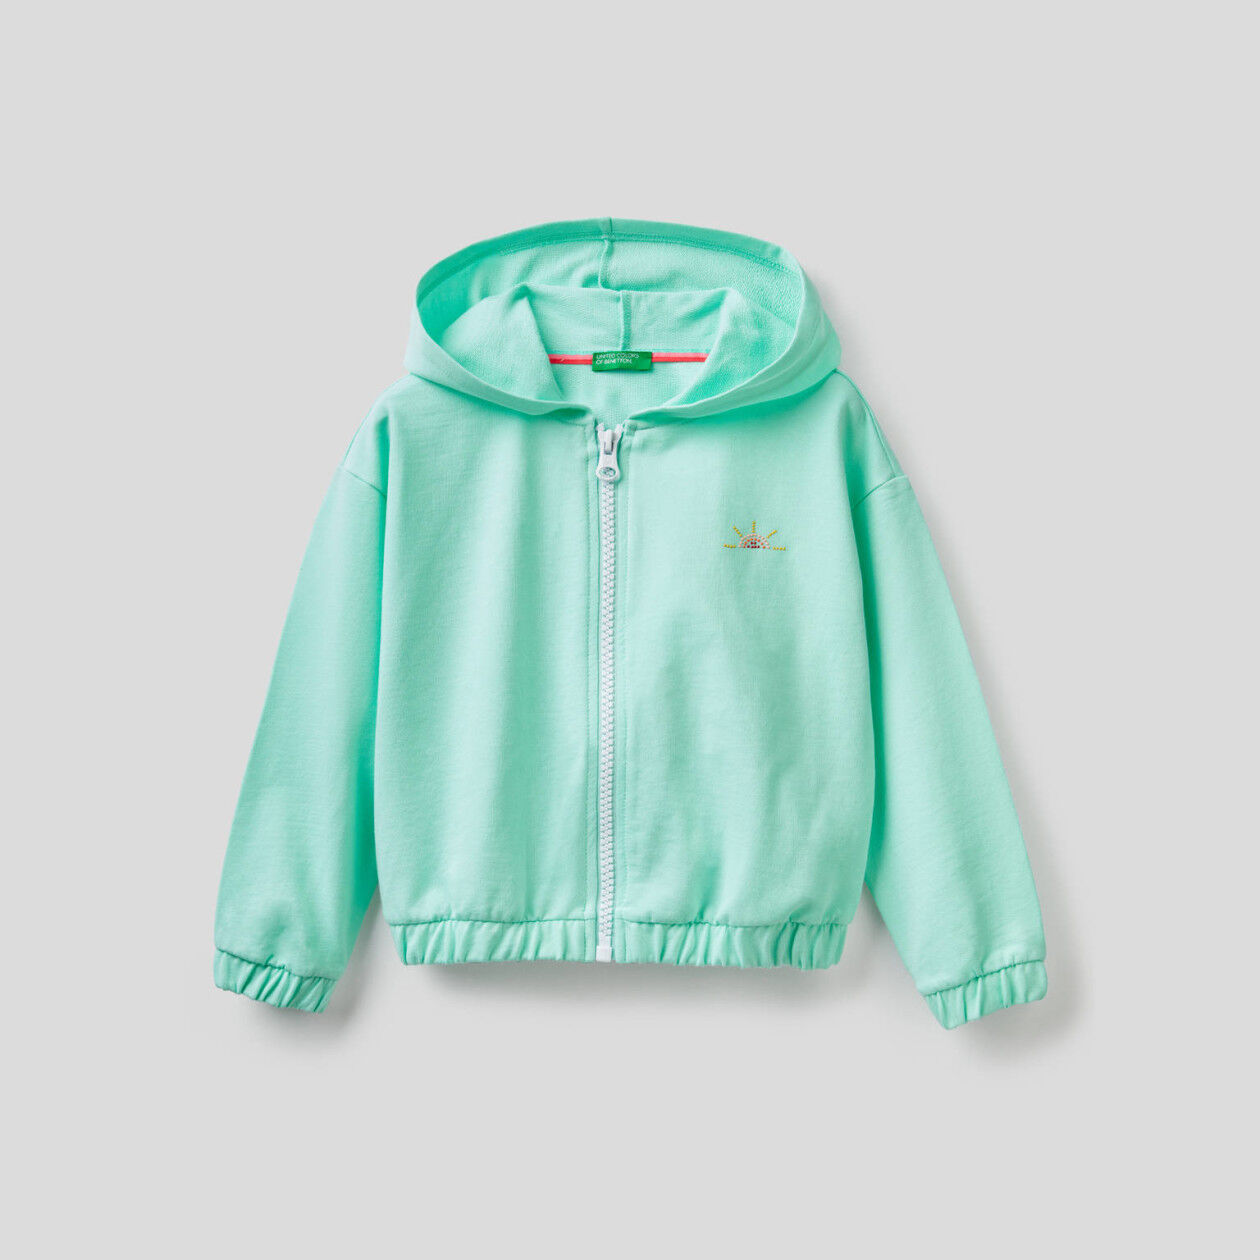 Lightweight zip-up hoodie